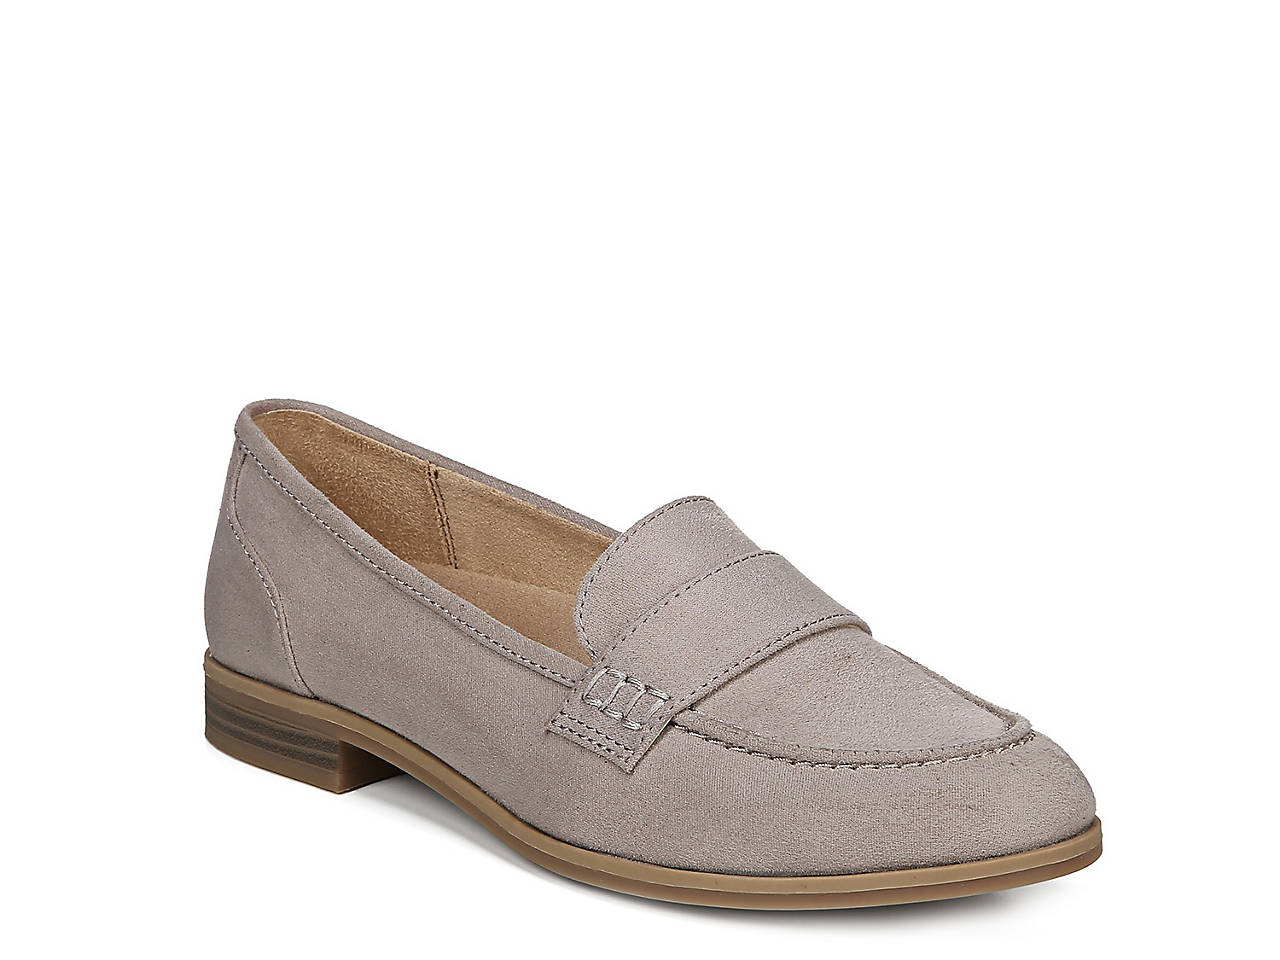 456910a7c8a Naturalizer Milo Penny Loafer Women s Shoes